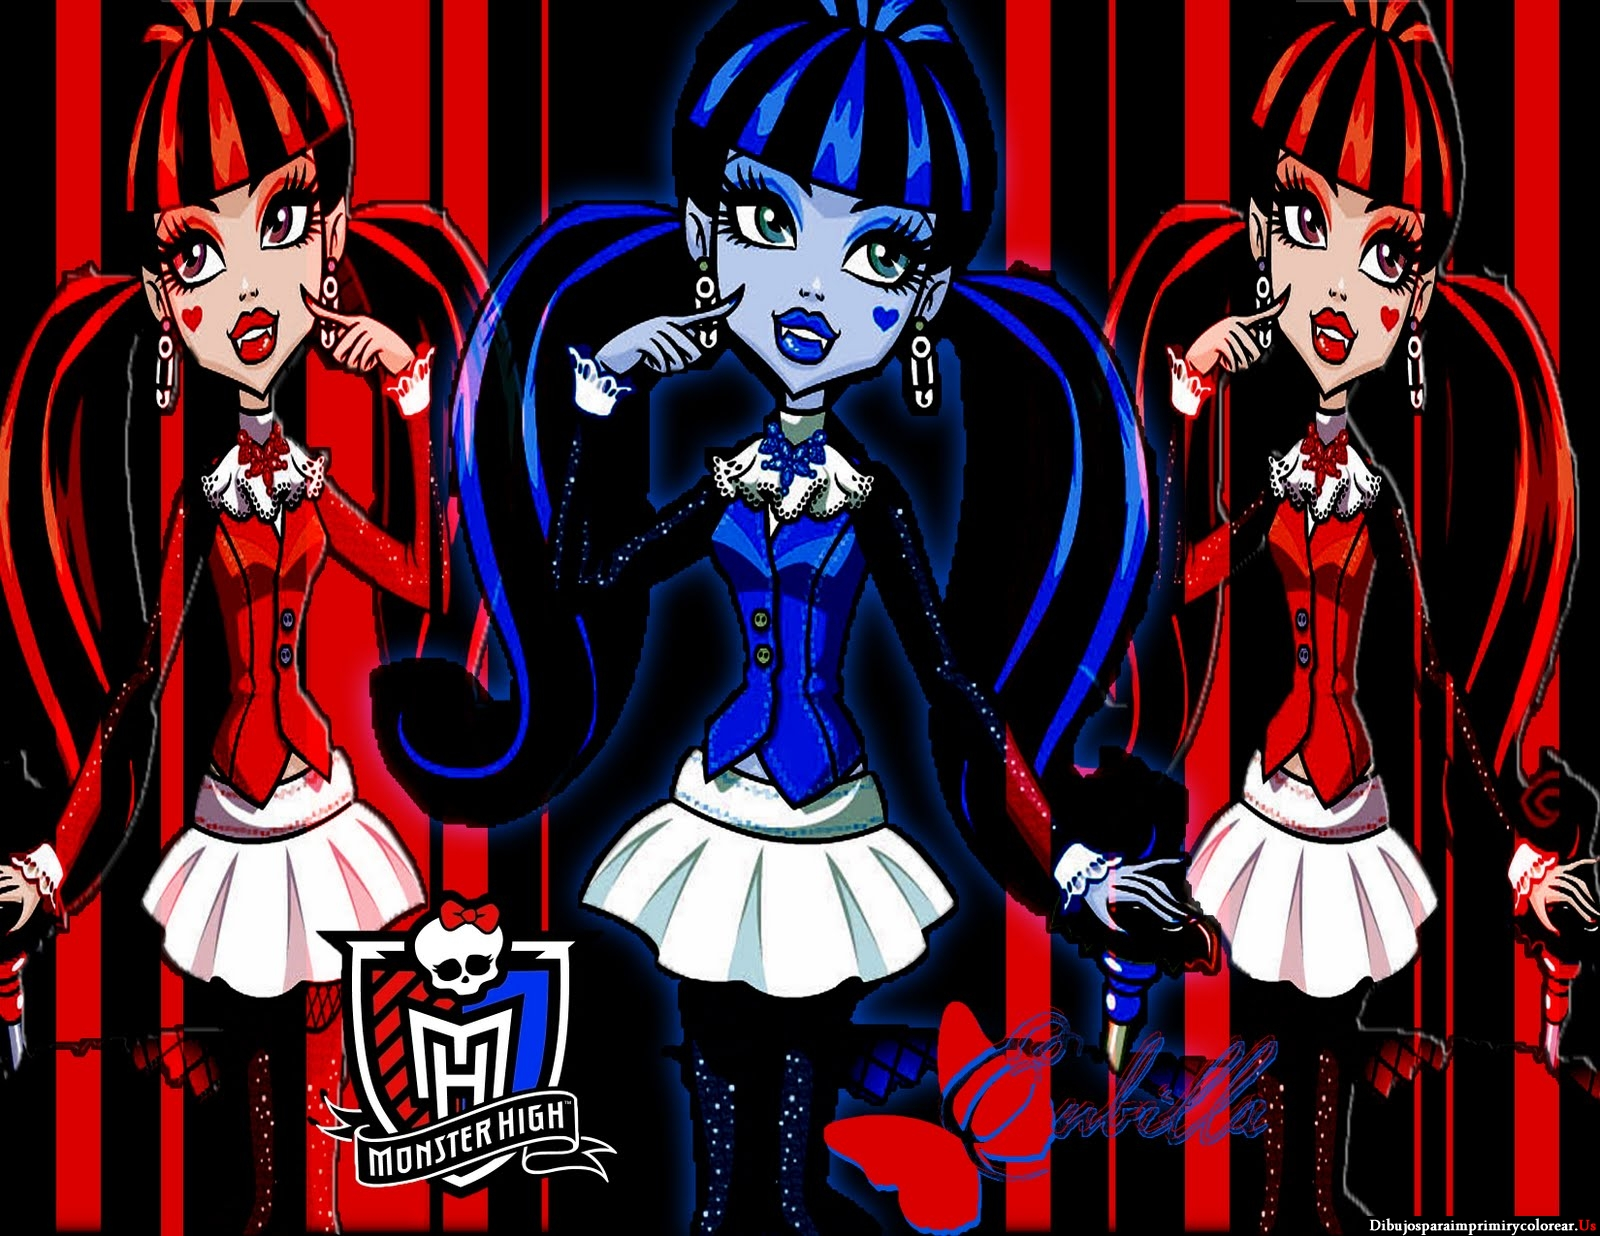 Fondos De Pantalla De Monster High: Imagenes De La Monster High Para El Fondo Del Escritorio